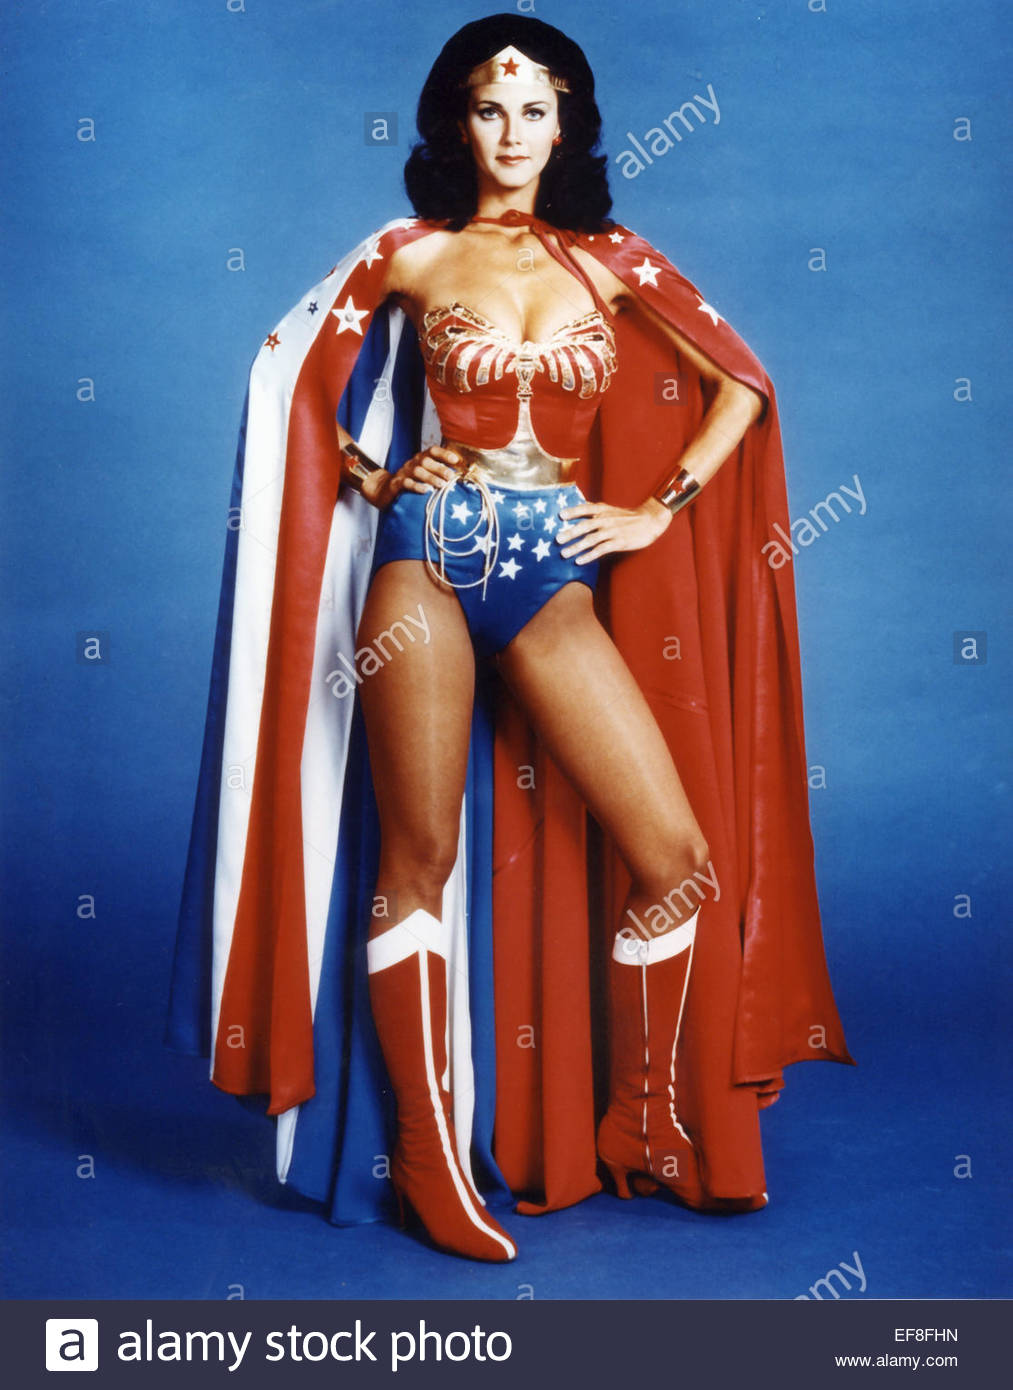 Lynda Carter Wonder Woman 1975 Slika 78249185 - Alamy-4474